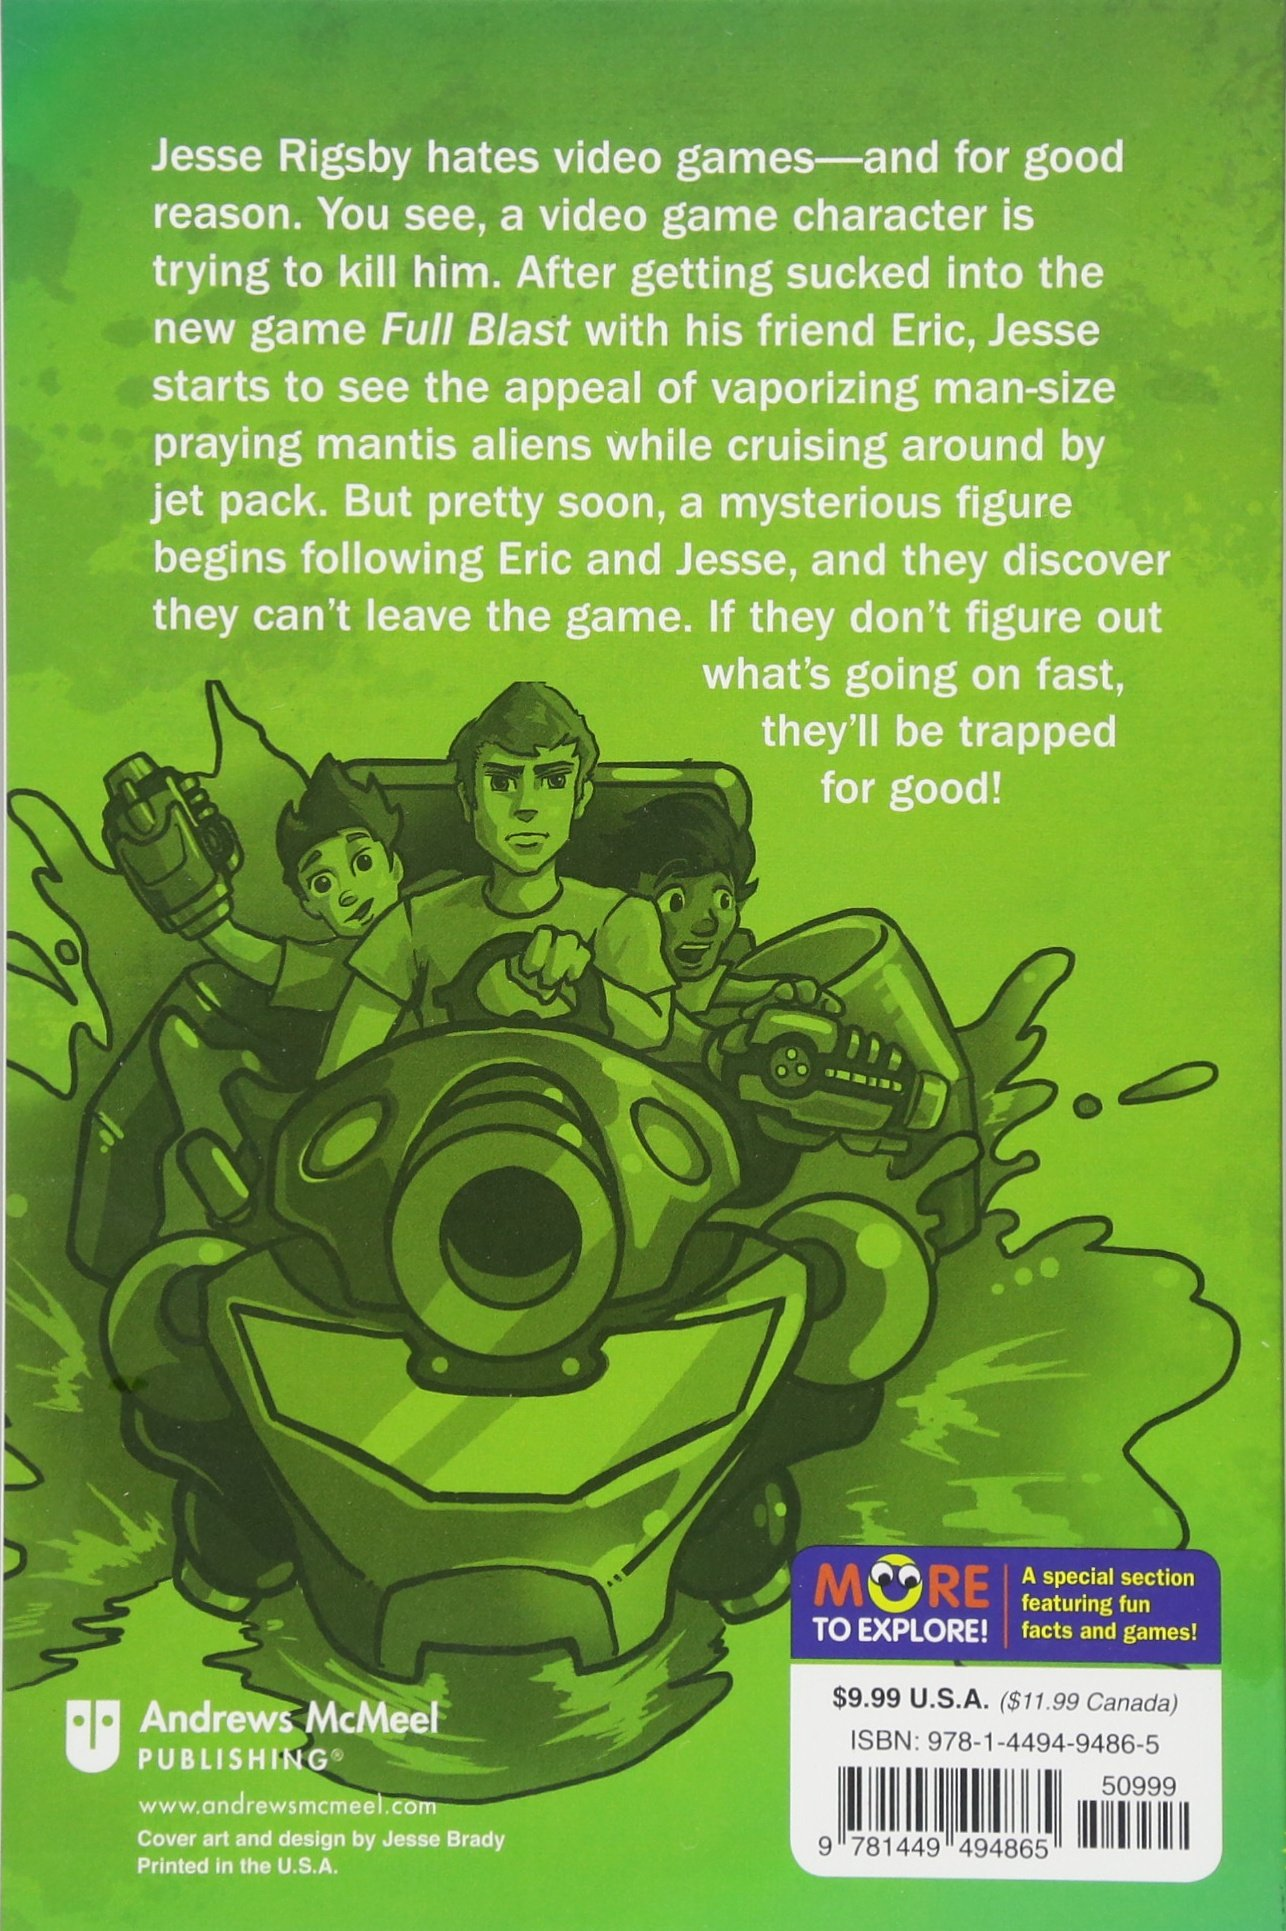 Trapped in a Video Game (Book 1) by Andrews McMeel Publishing (Image #2)